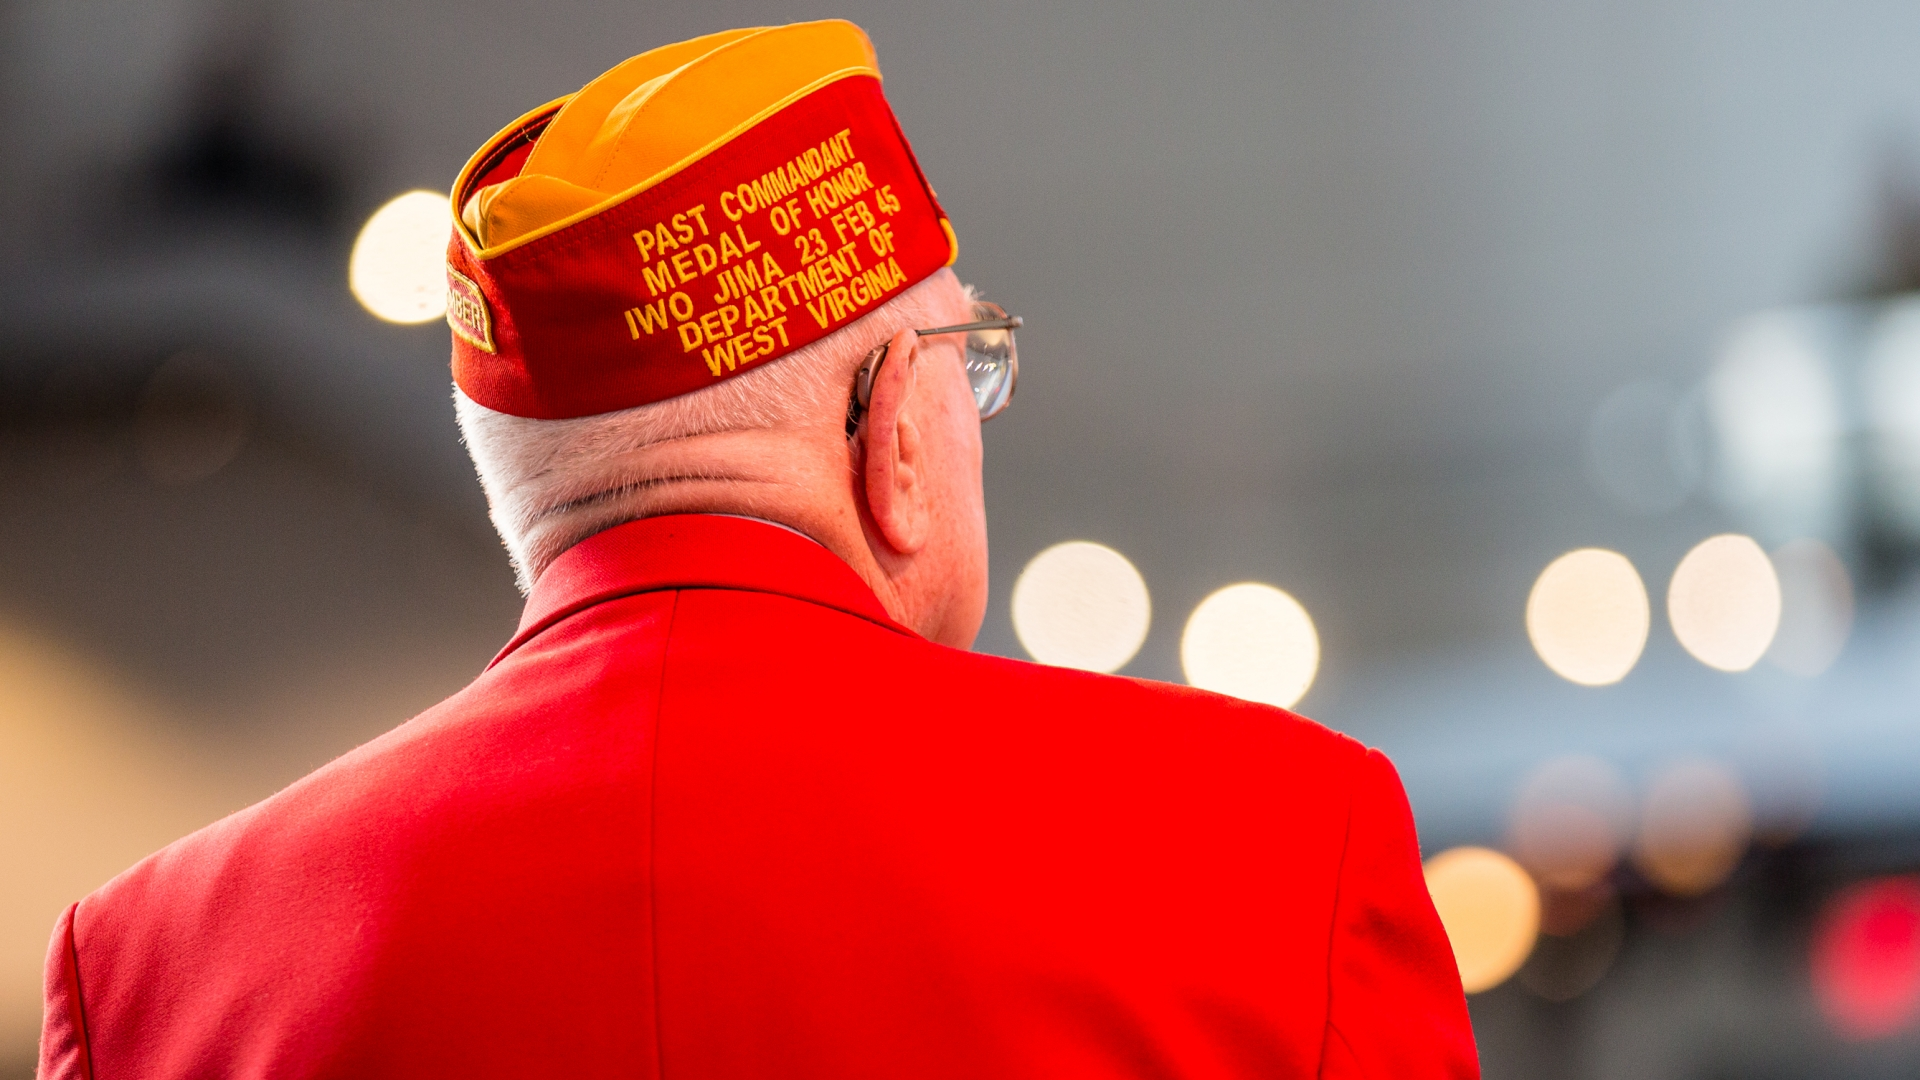 Hershel 'Woody' Williams attends the WWII Pacific Theatre Exhibit opening at the National World War II Museum in New Orleans, 2015. (Credit: Josh Brasted/Getty Images)